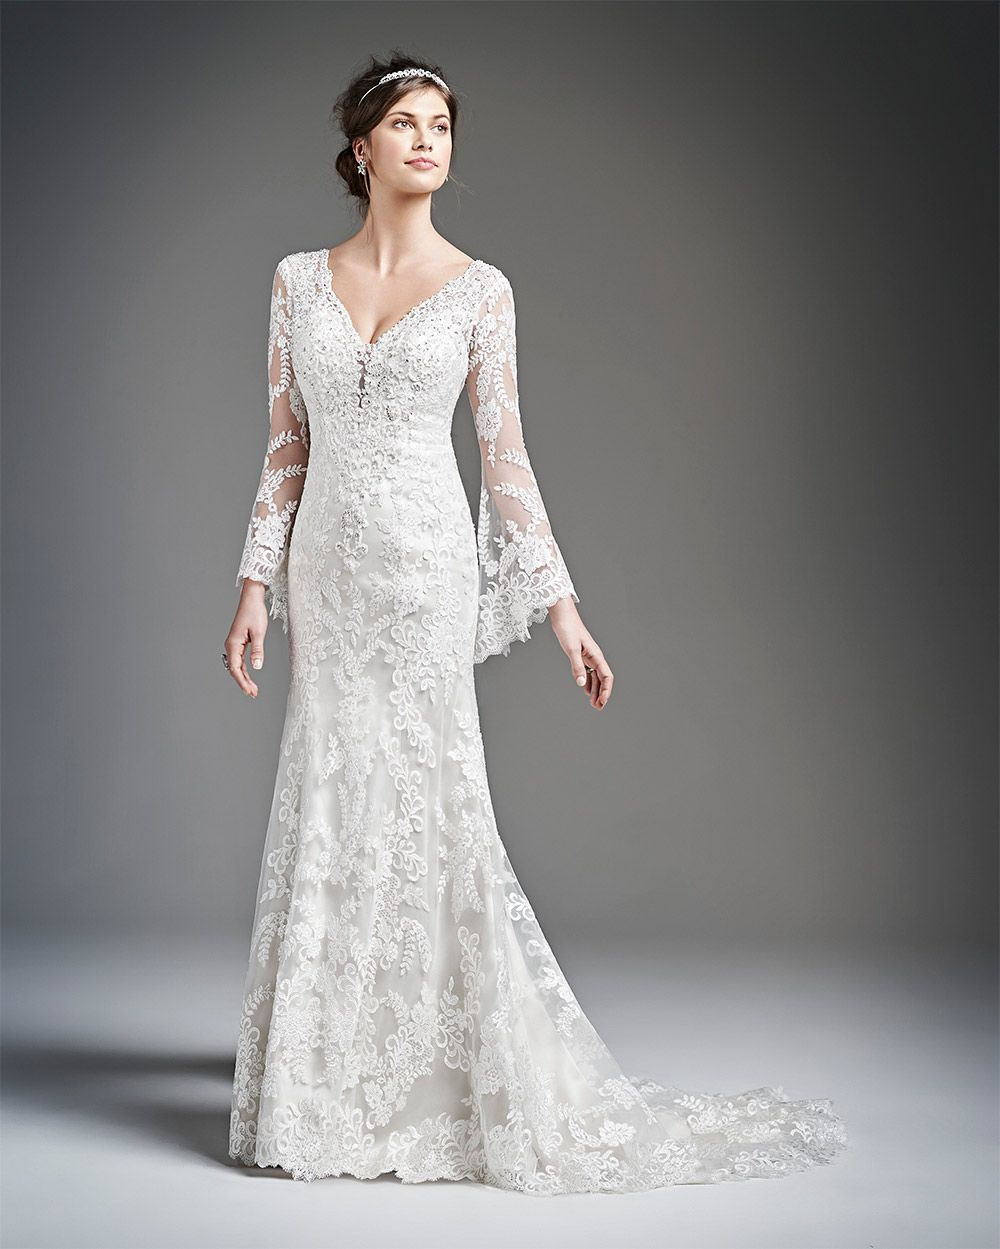 Wedding Dresses for Older Brides | When someday comes... | Pinterest ...